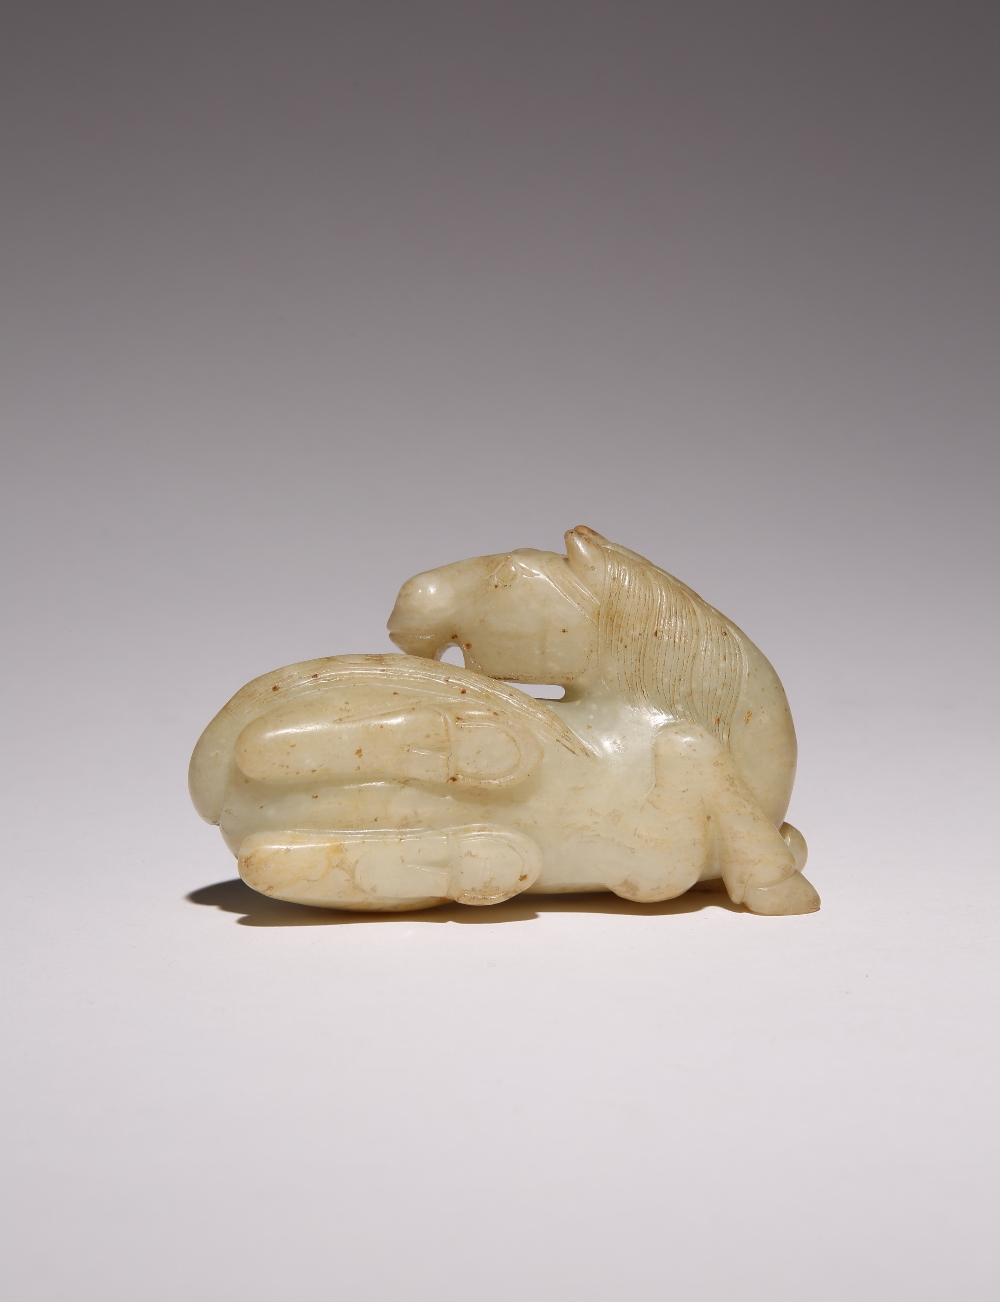 A CHINESE CELADON JADE CARVING OF A HORSE 17TH CENTURY OR LATER The recumbent horse turned looking - Image 2 of 2